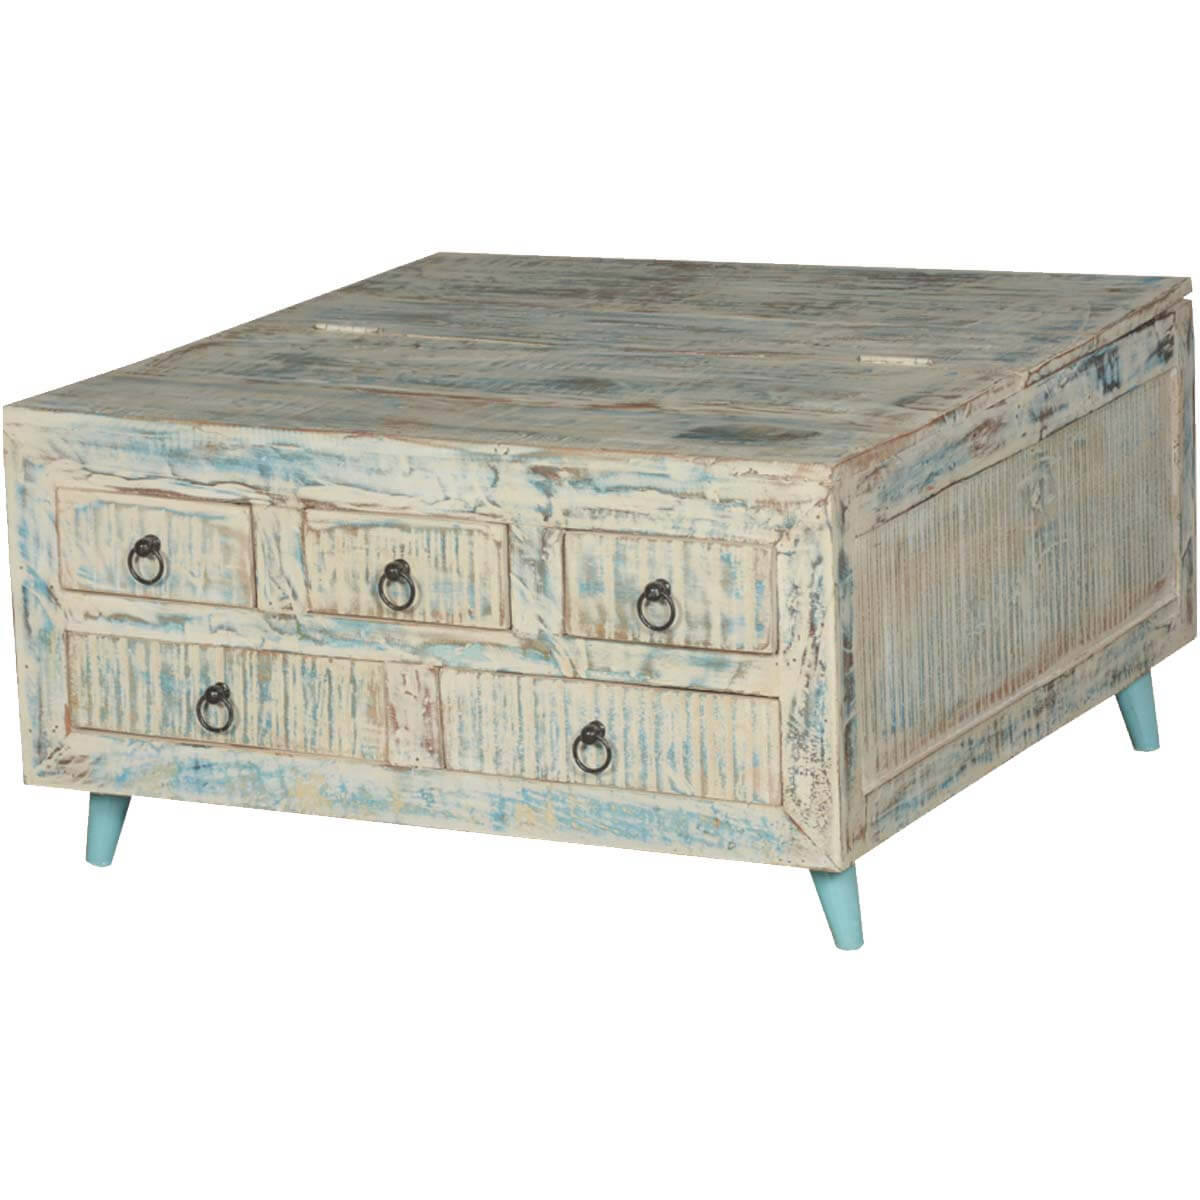 White Reclaimed Wood Coffee Table With Drawers: Vernon White Washed Reclaimed Wood Square Coffee Table 5